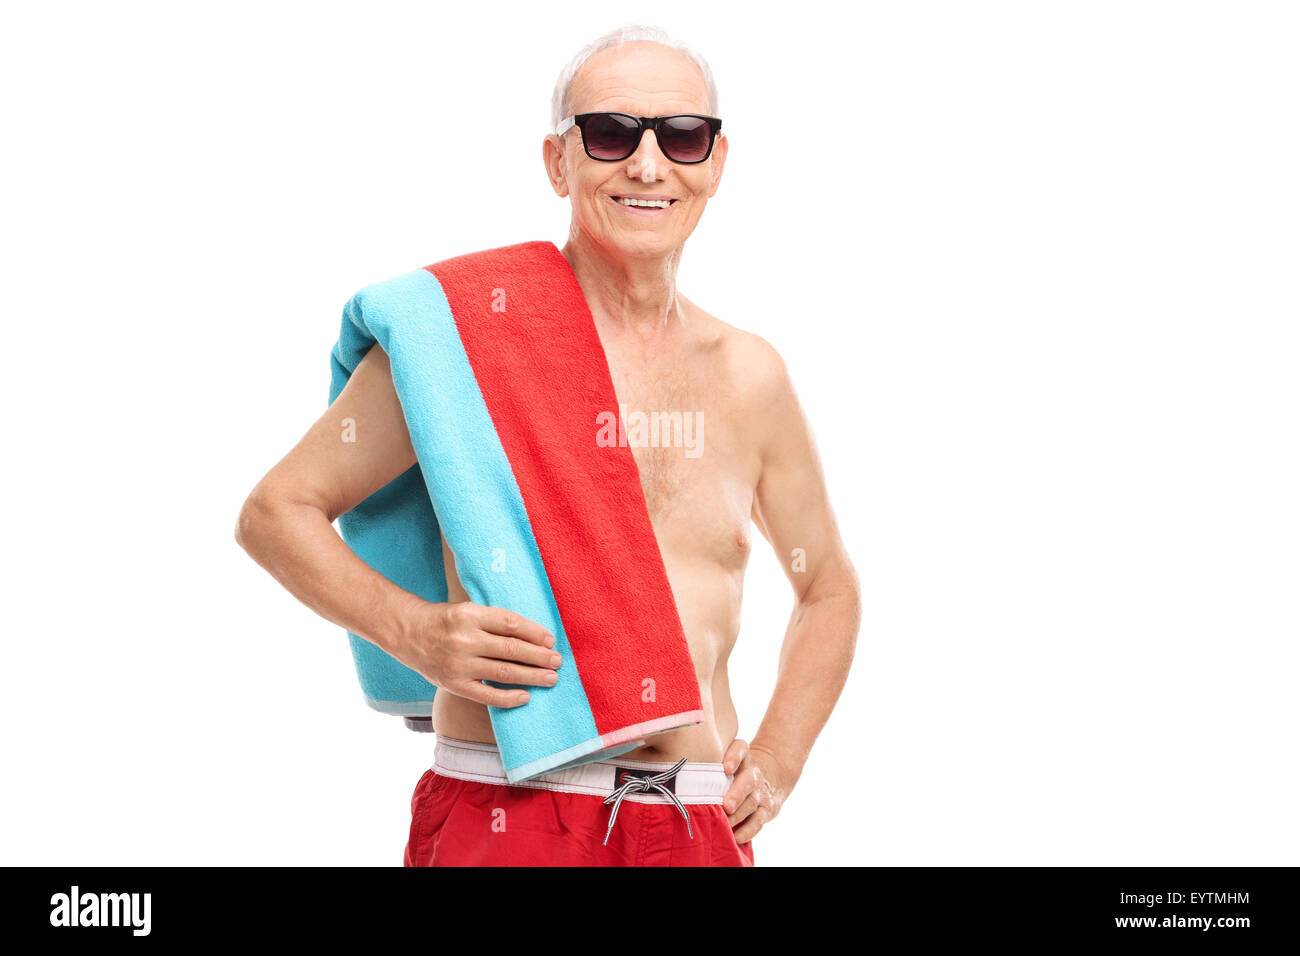 Mature tourist in swim trunks holding a towel and looking at the camera isolated on white background - Stock Image